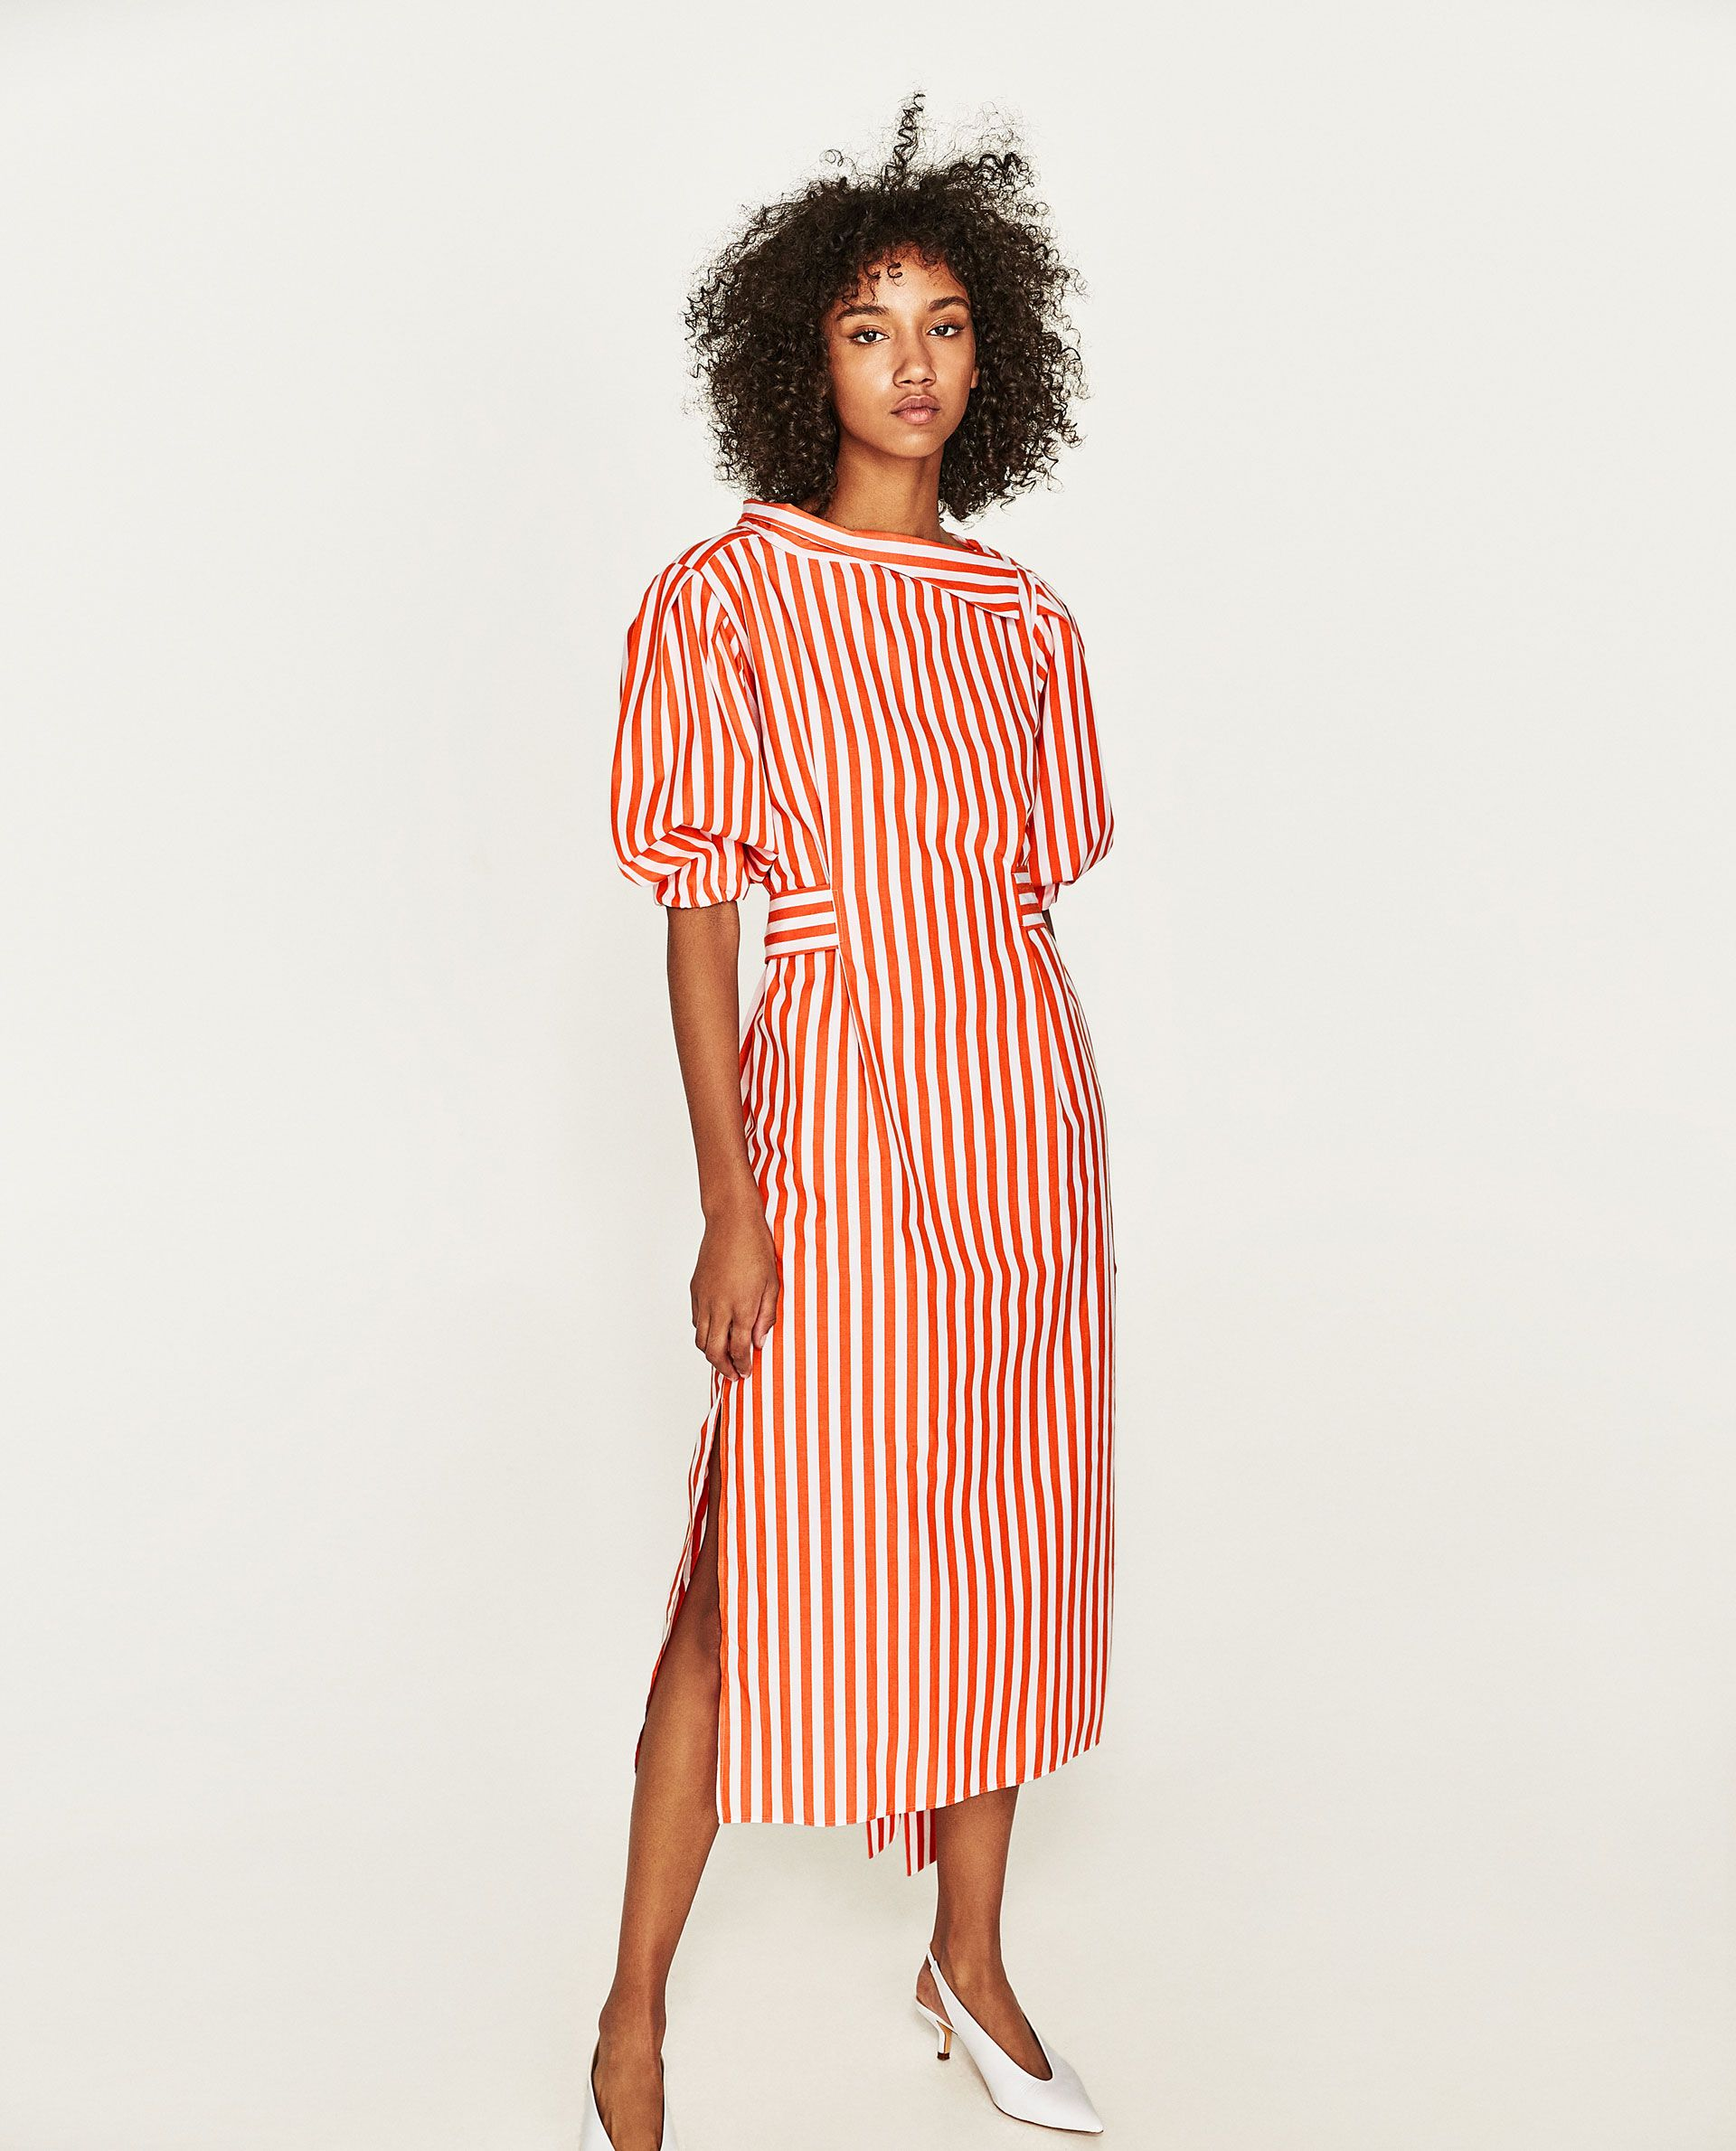 923c40619843 Smart Summer Dresses You Can Legit Wear to Work